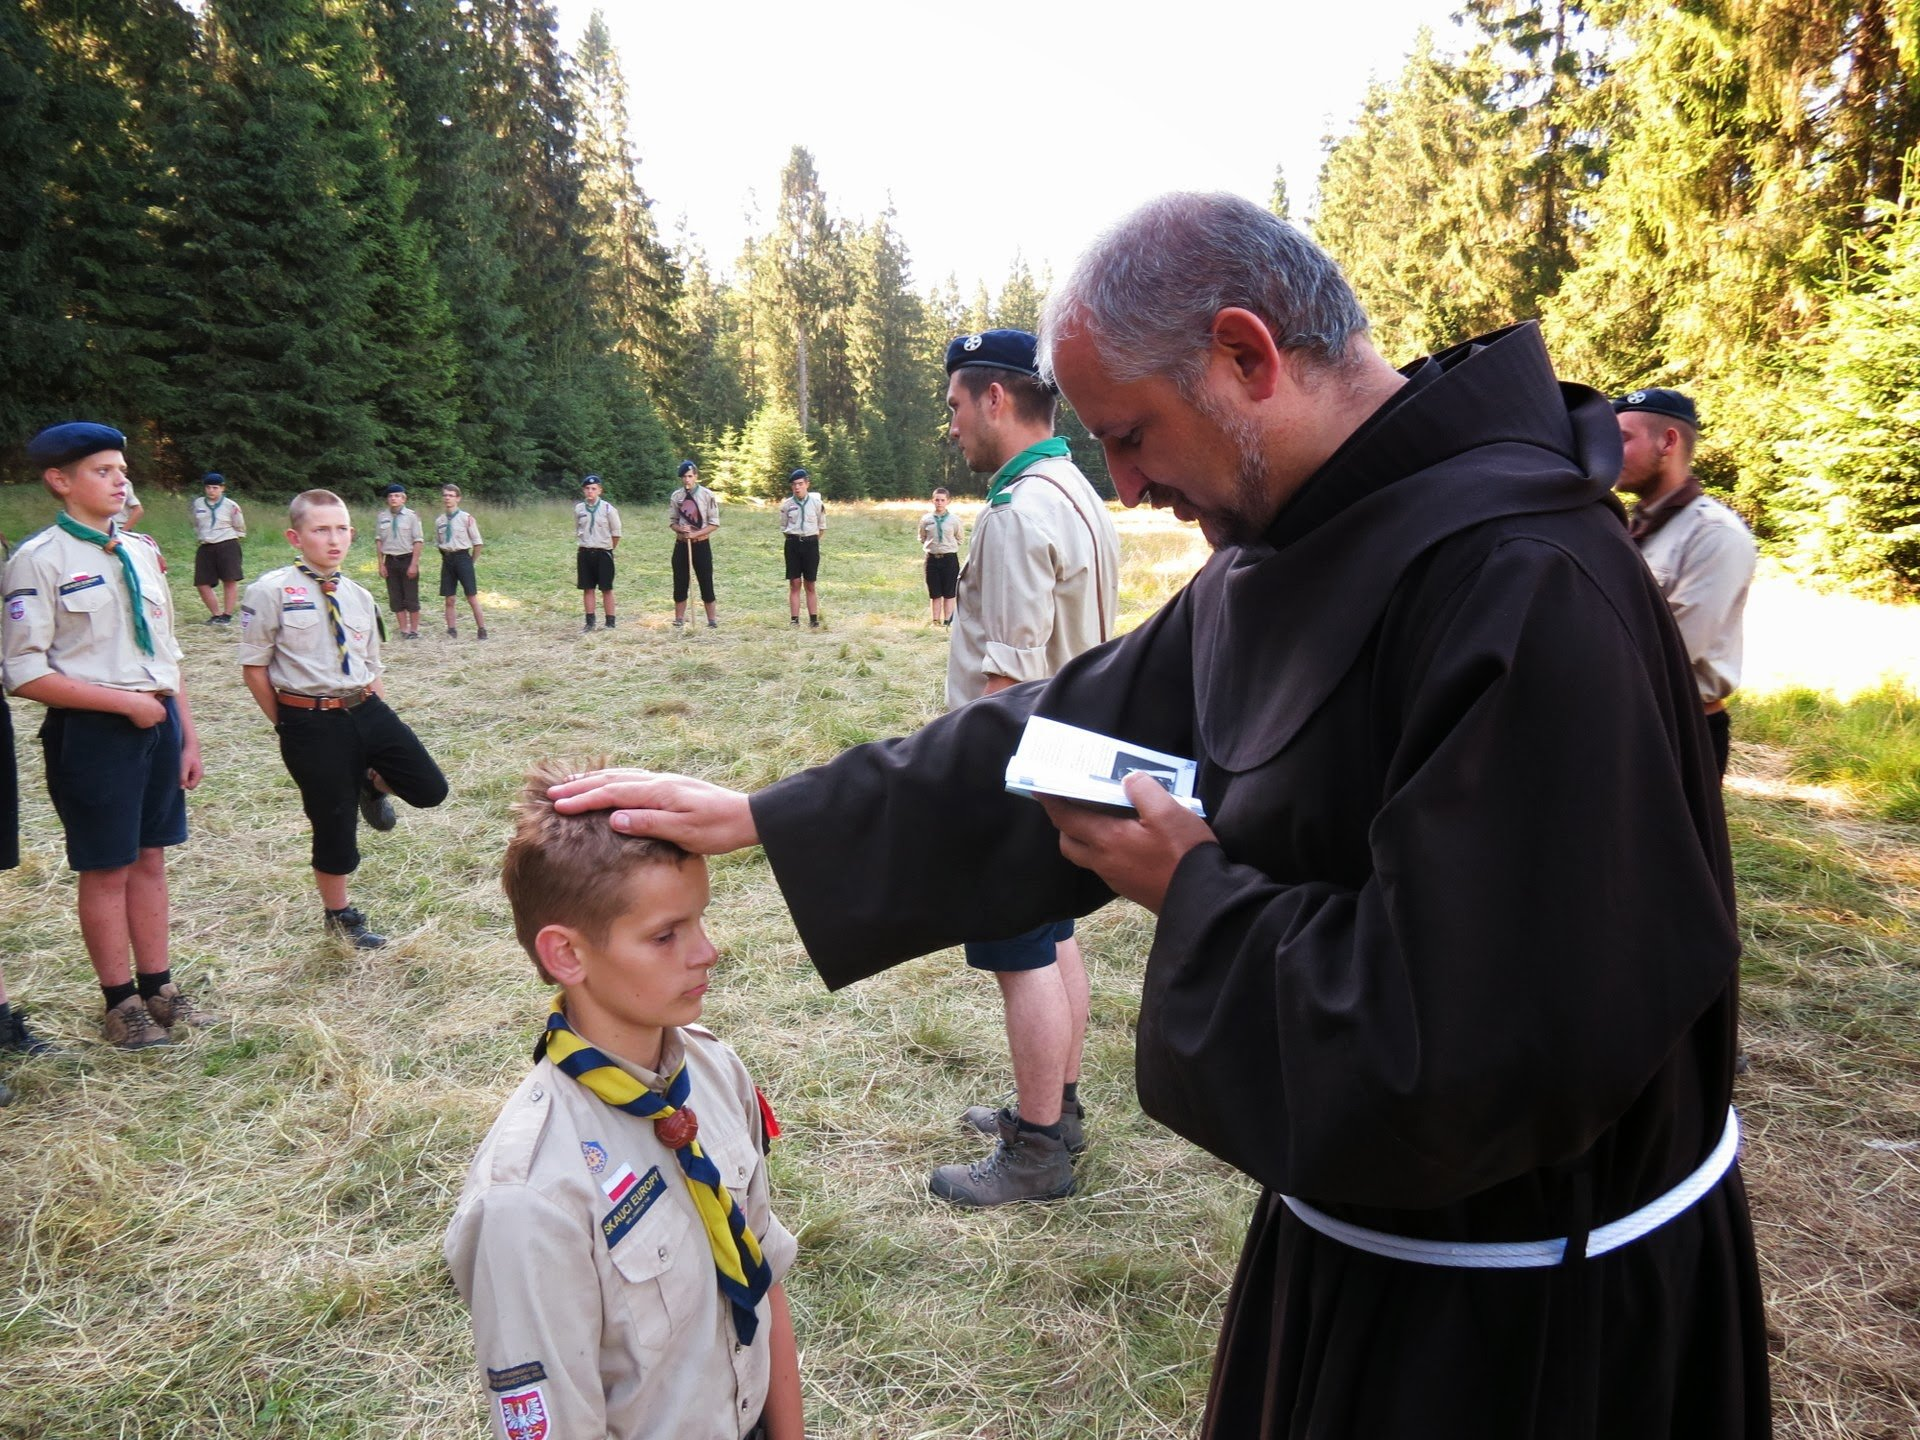 Franciscan friar blesses boy scout